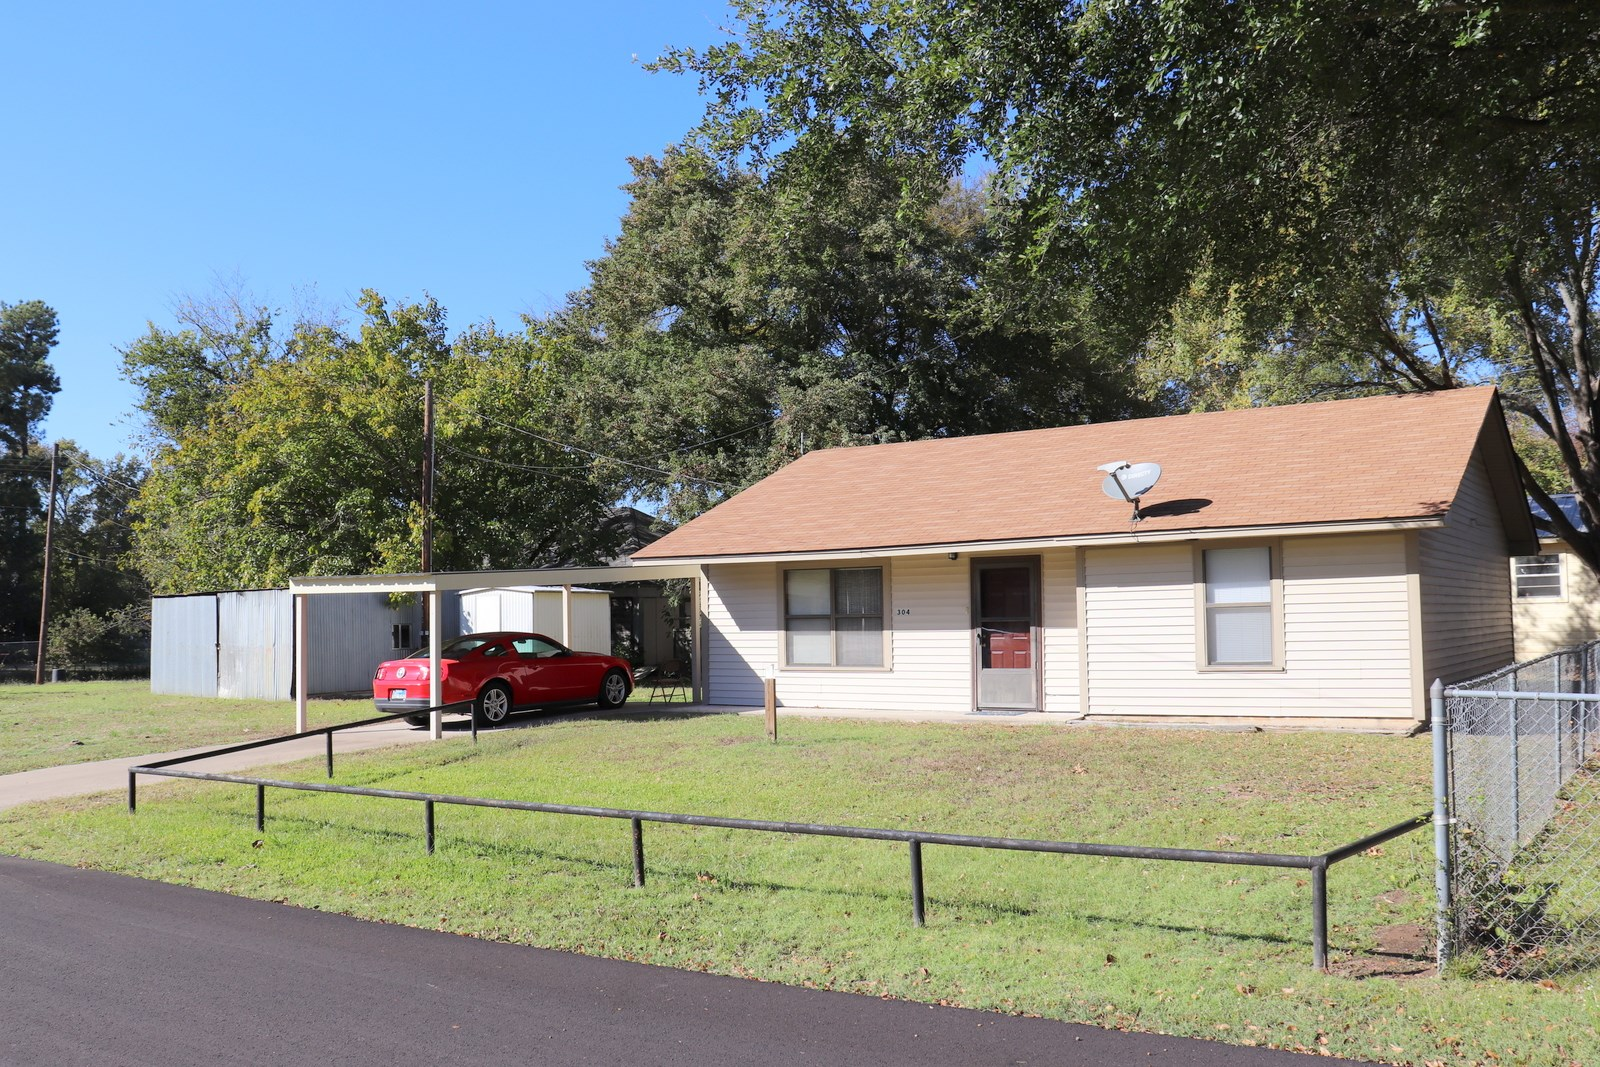 MOVE IN READY 2/1/1 QUITMAN, TEXAS - INVEST - DOWNSIZE